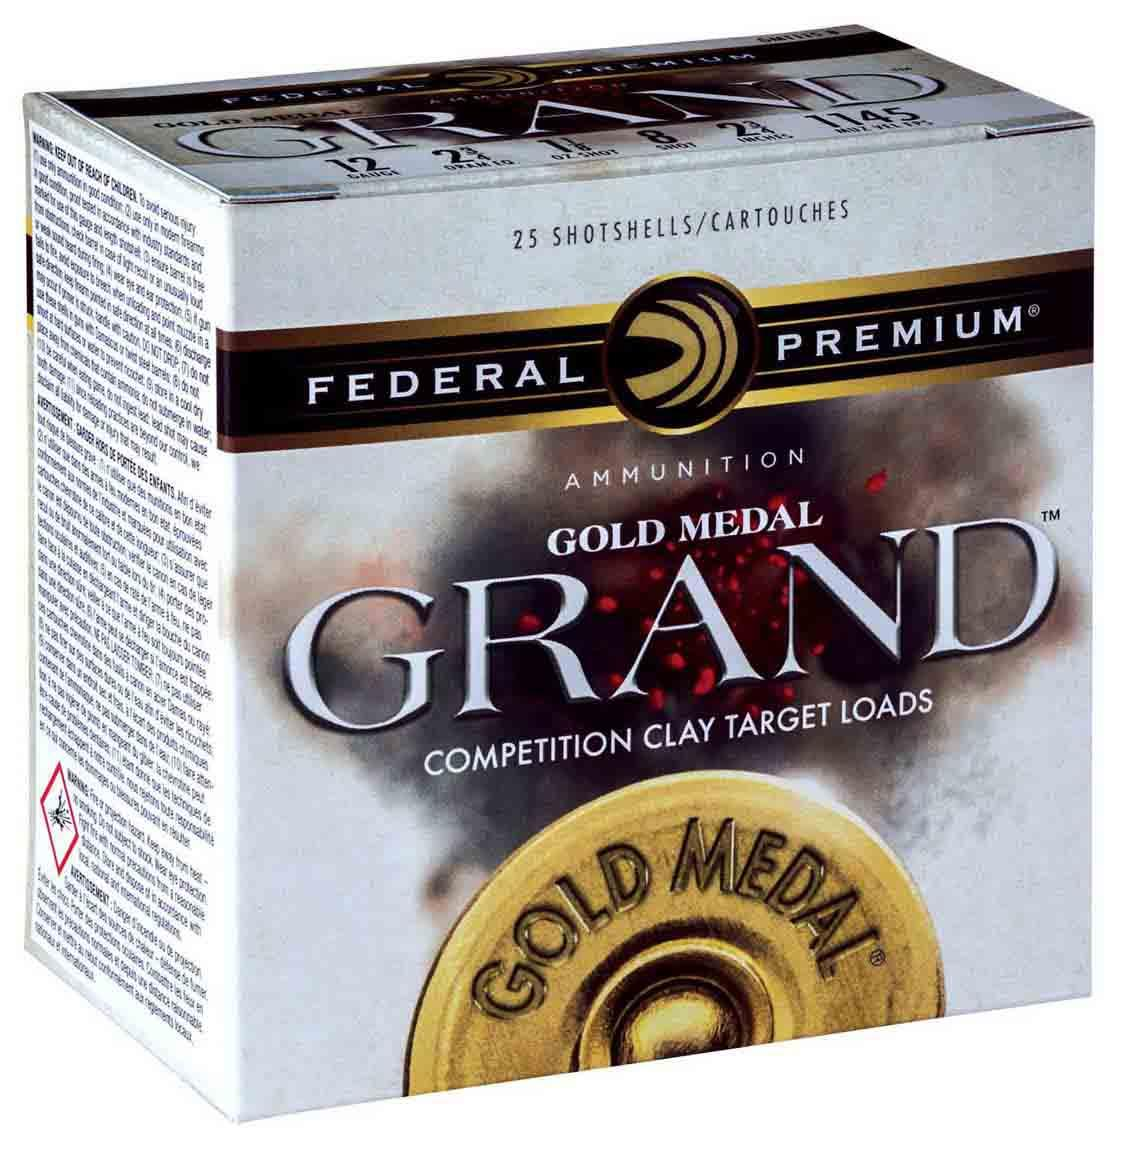 "Federal Gold Medal Grand Plastic Target Shotshells, 12 GA 2 3/4"" 2 3/4 DRAM EQ 1 1/8oz 1100FPS_1.jpg"